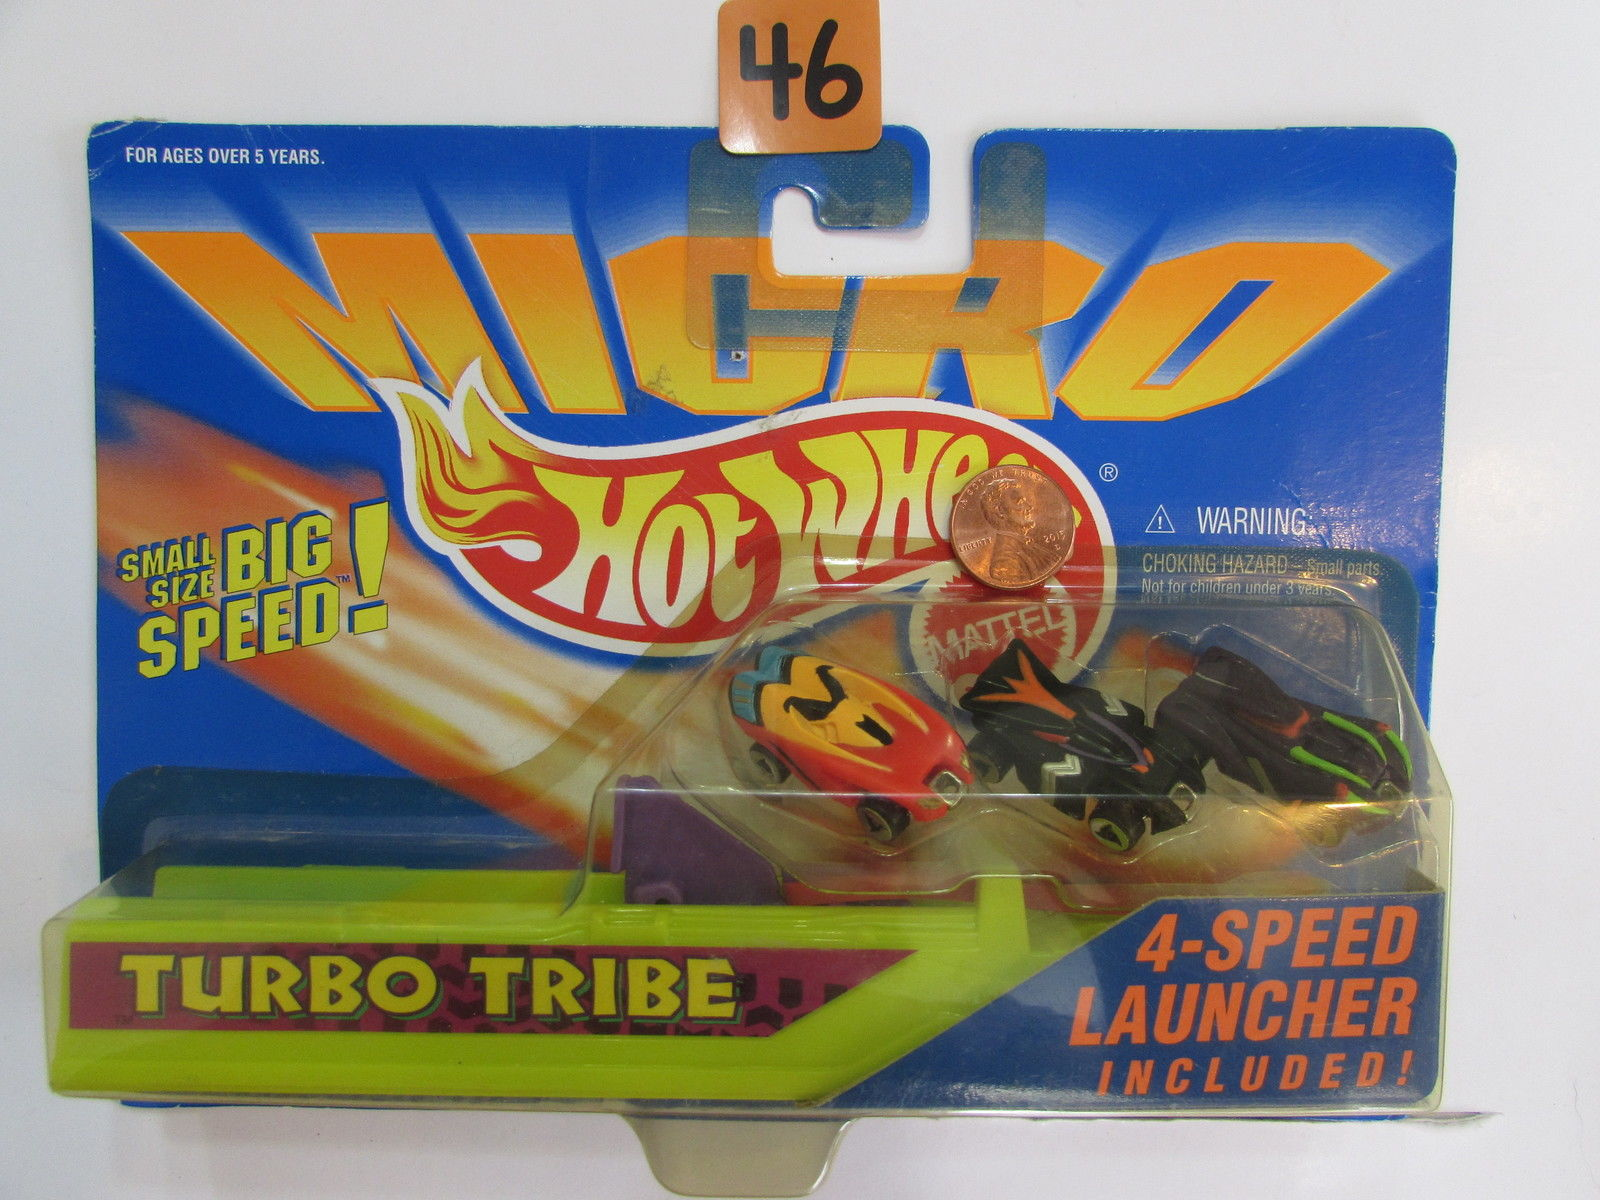 HOT WHEELS 1995 MICRO SIZE - TURBO TRIBE W/ 4 - SPEED LAUNCHER